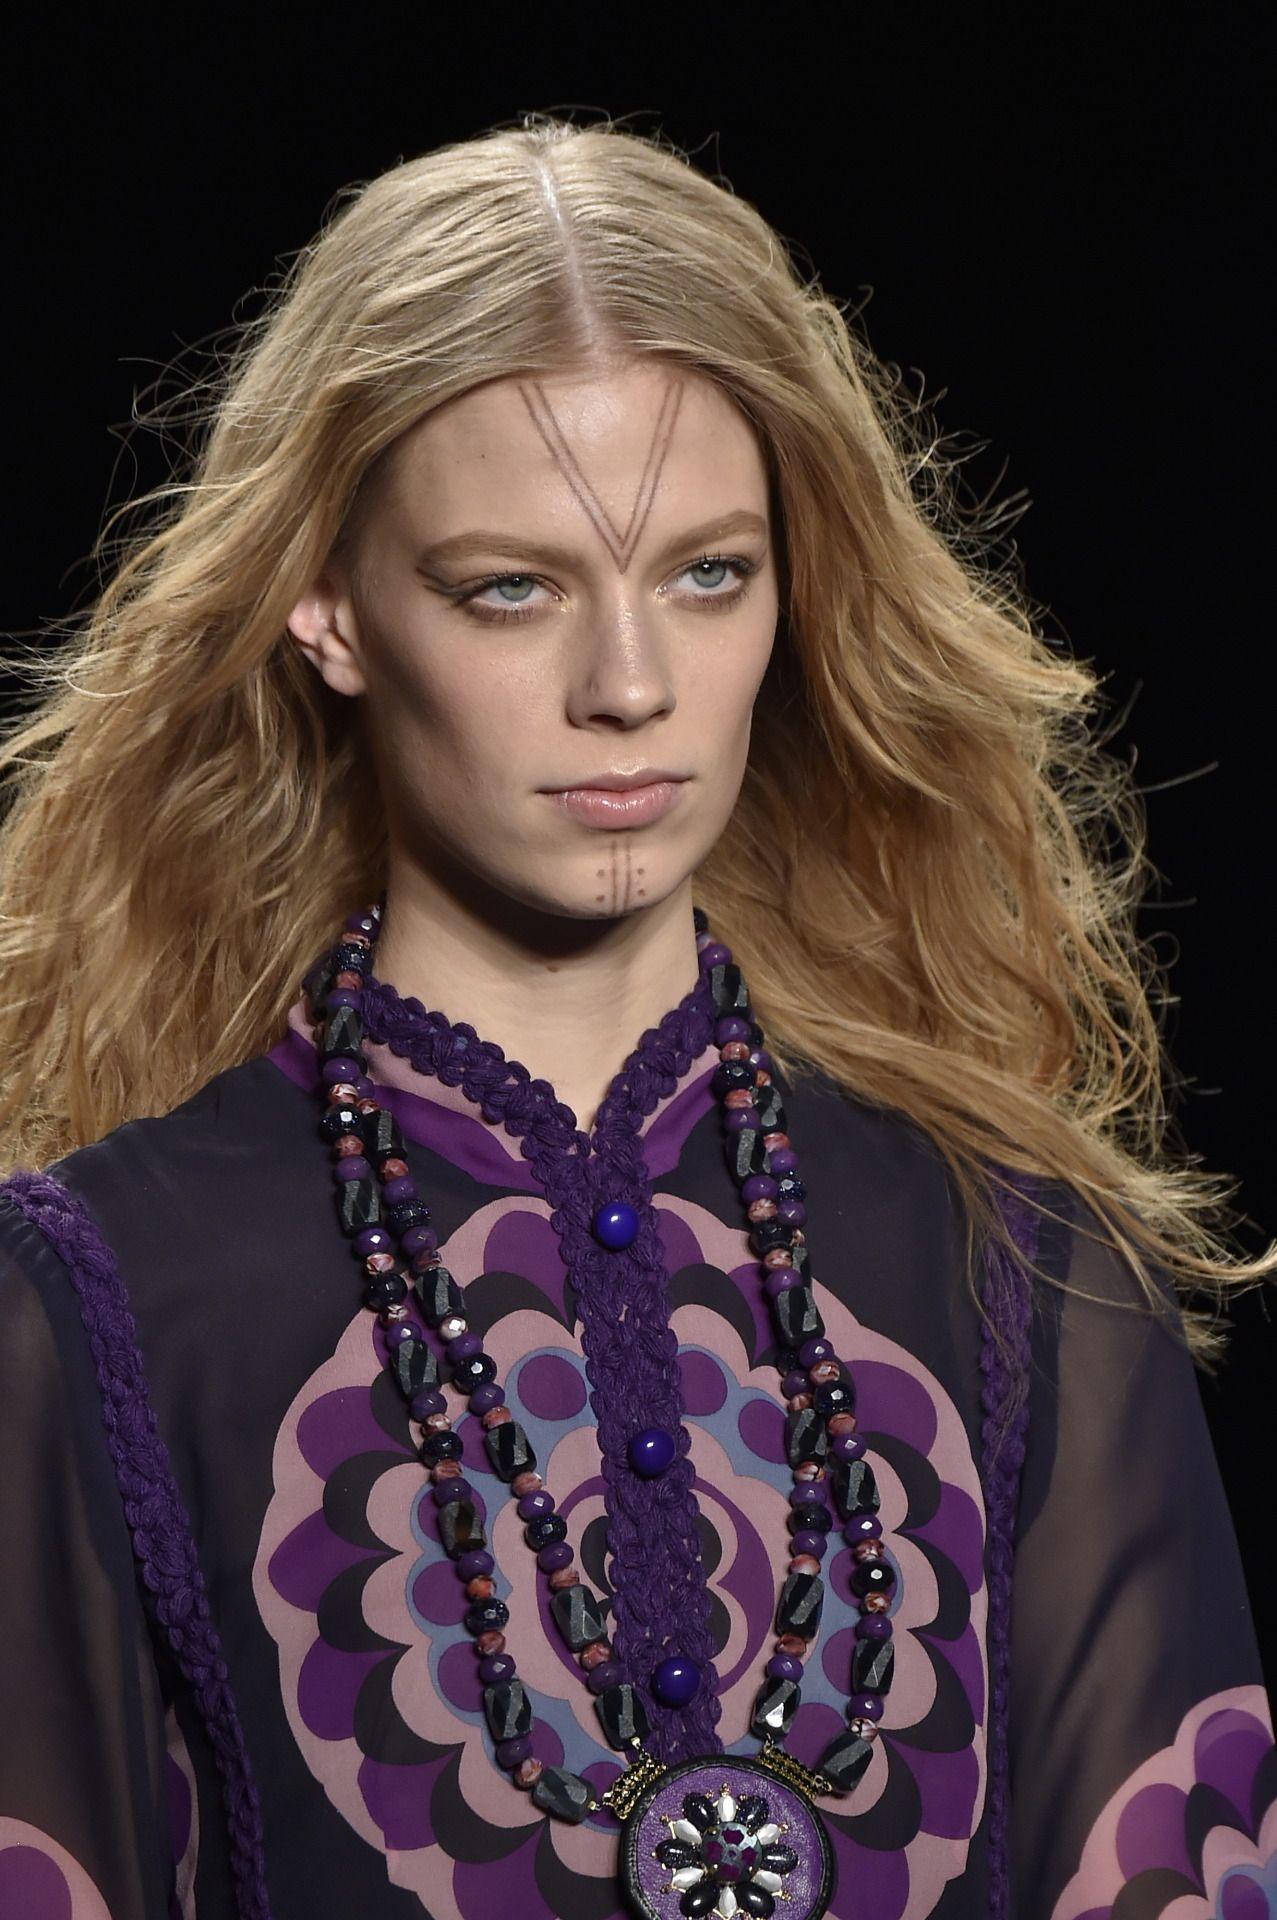 The models at the annasui show sported inuit face tattoos